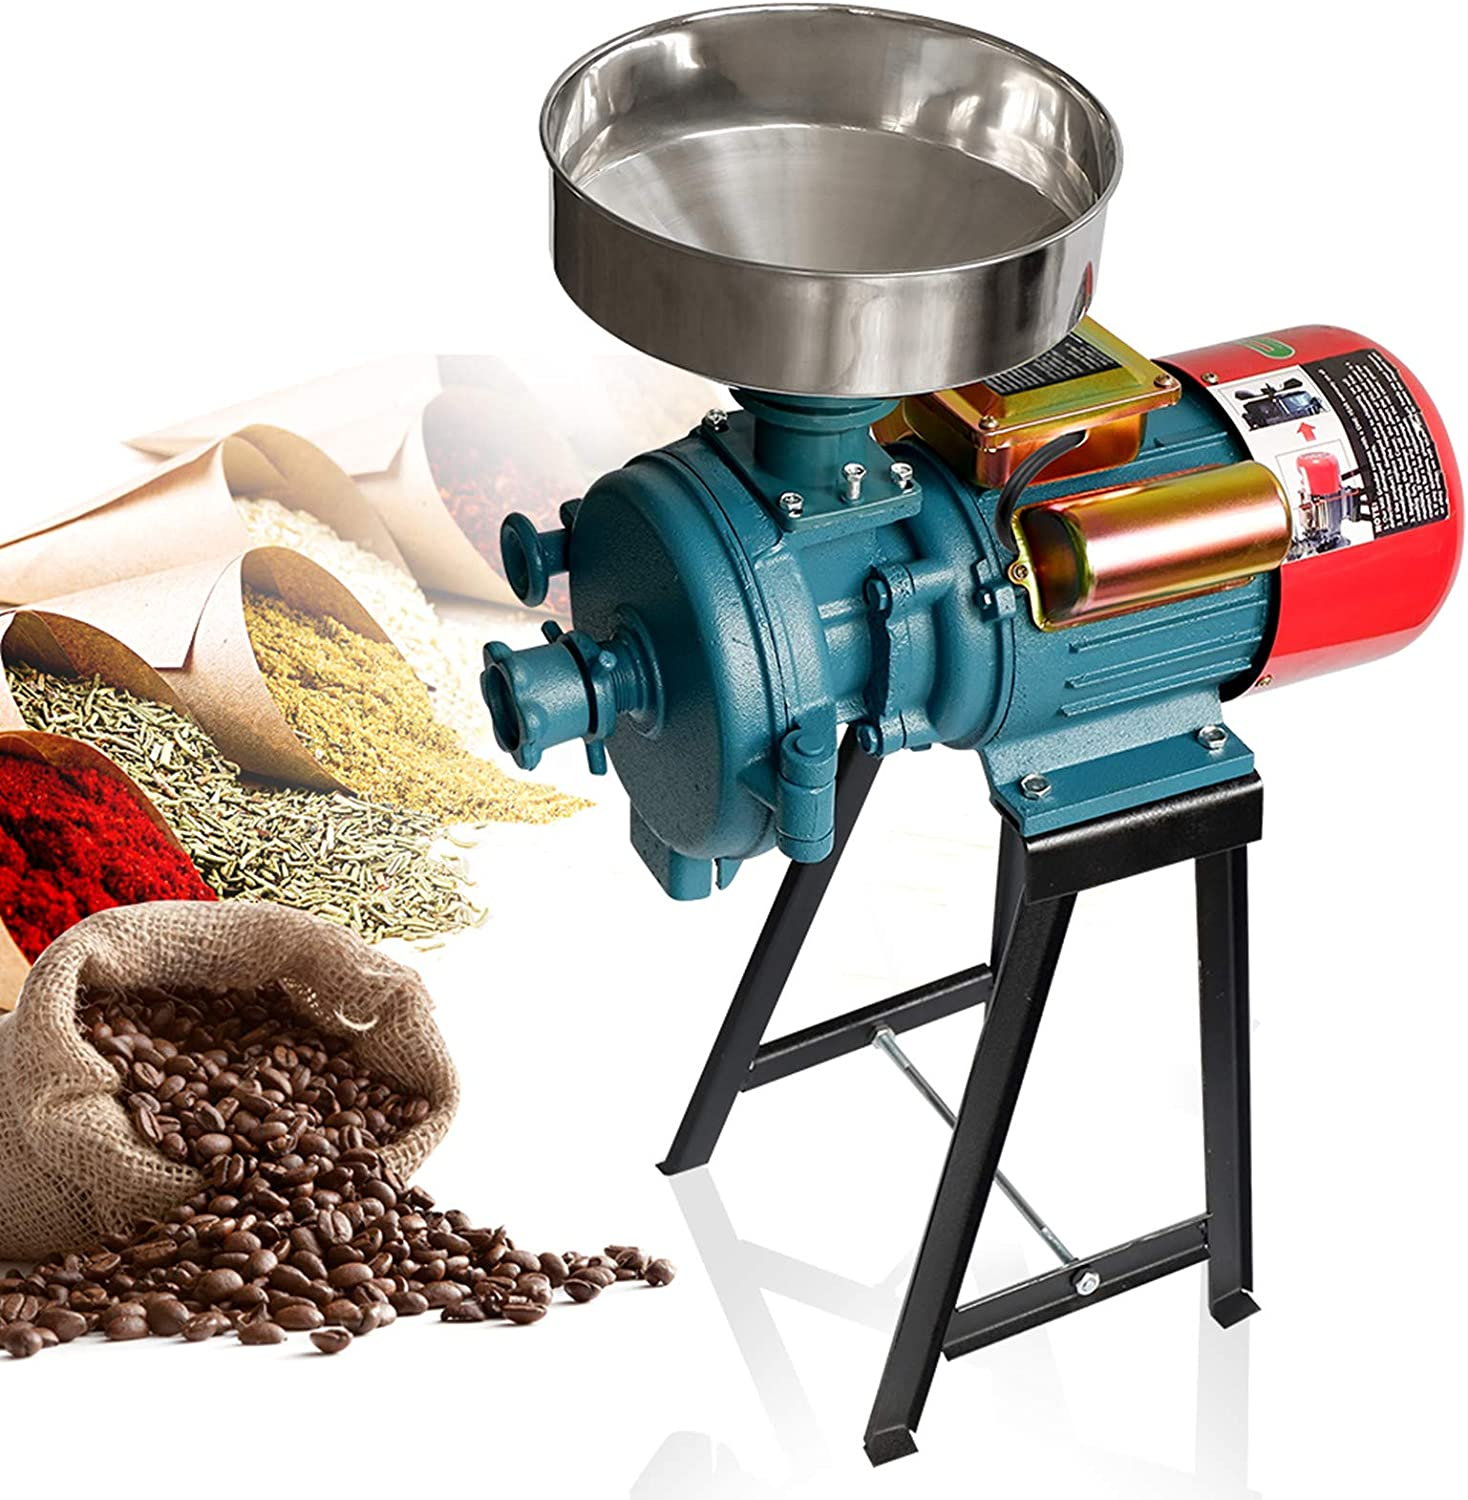 Grain Popularity Mills Electric Mill Grinder 3000W Recommended 110V